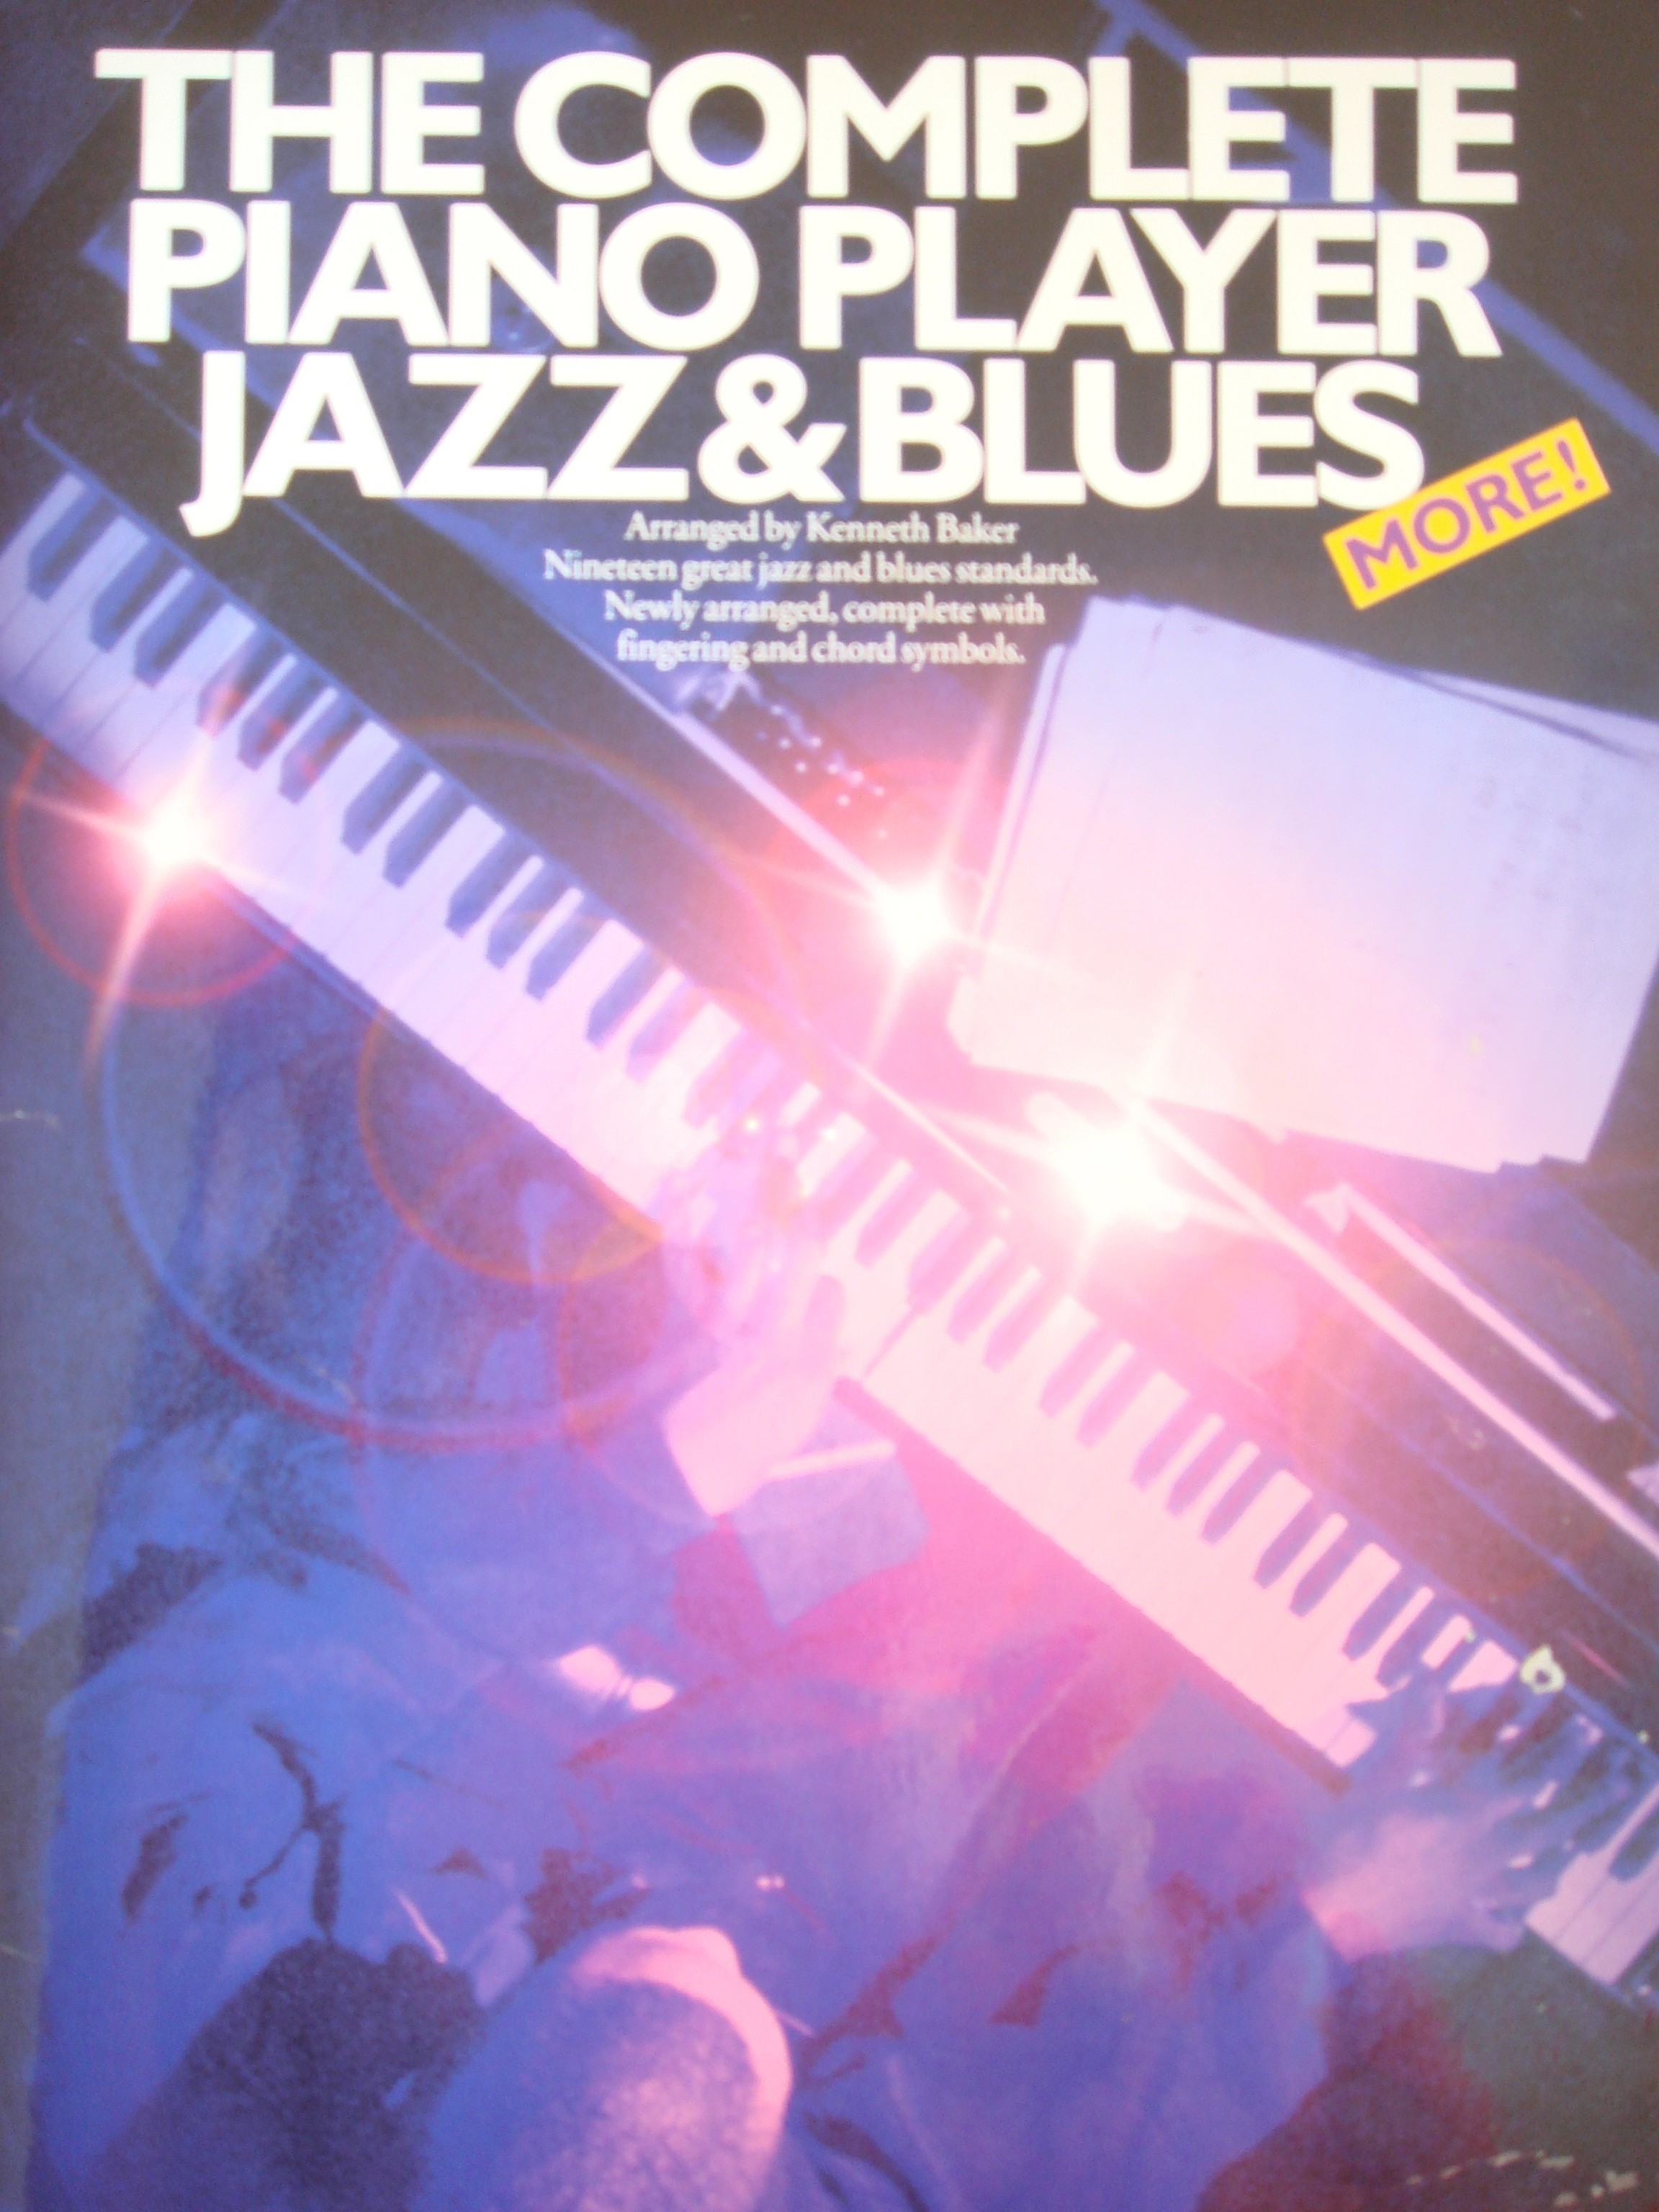 The Complete Piano Player More Jazz & Blues Book Kenneth Baker S143